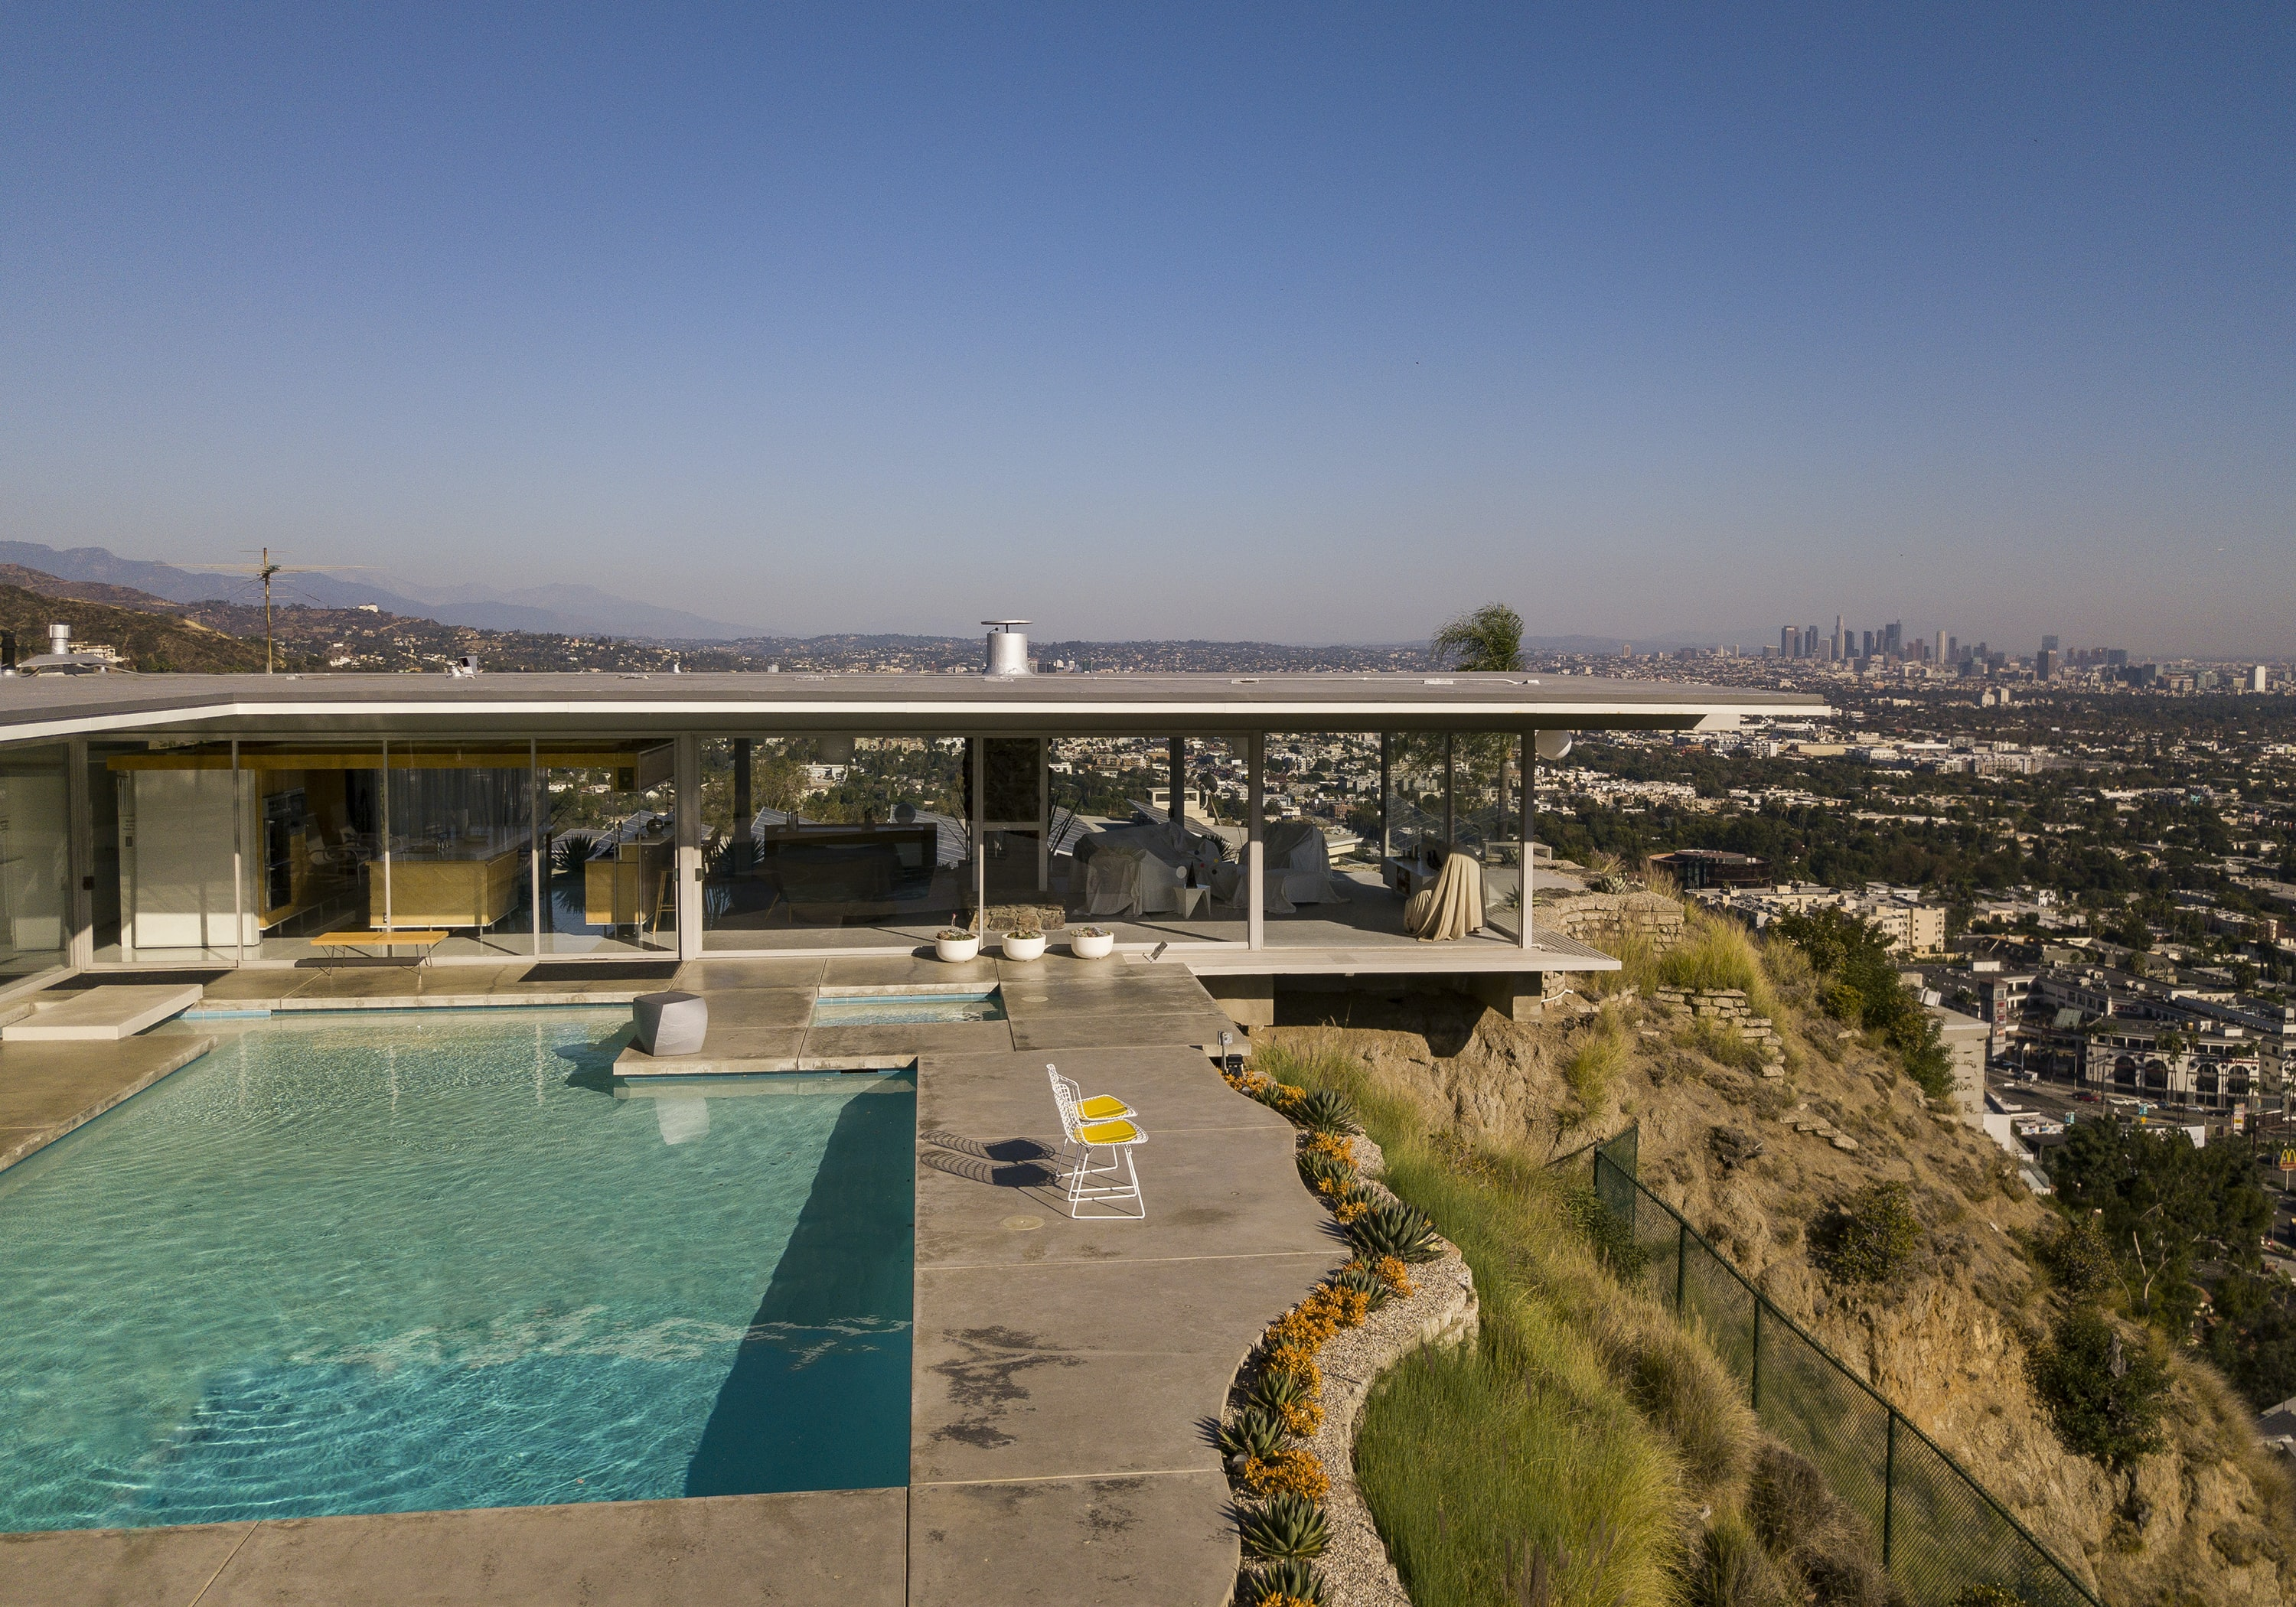 swimming pool on roof